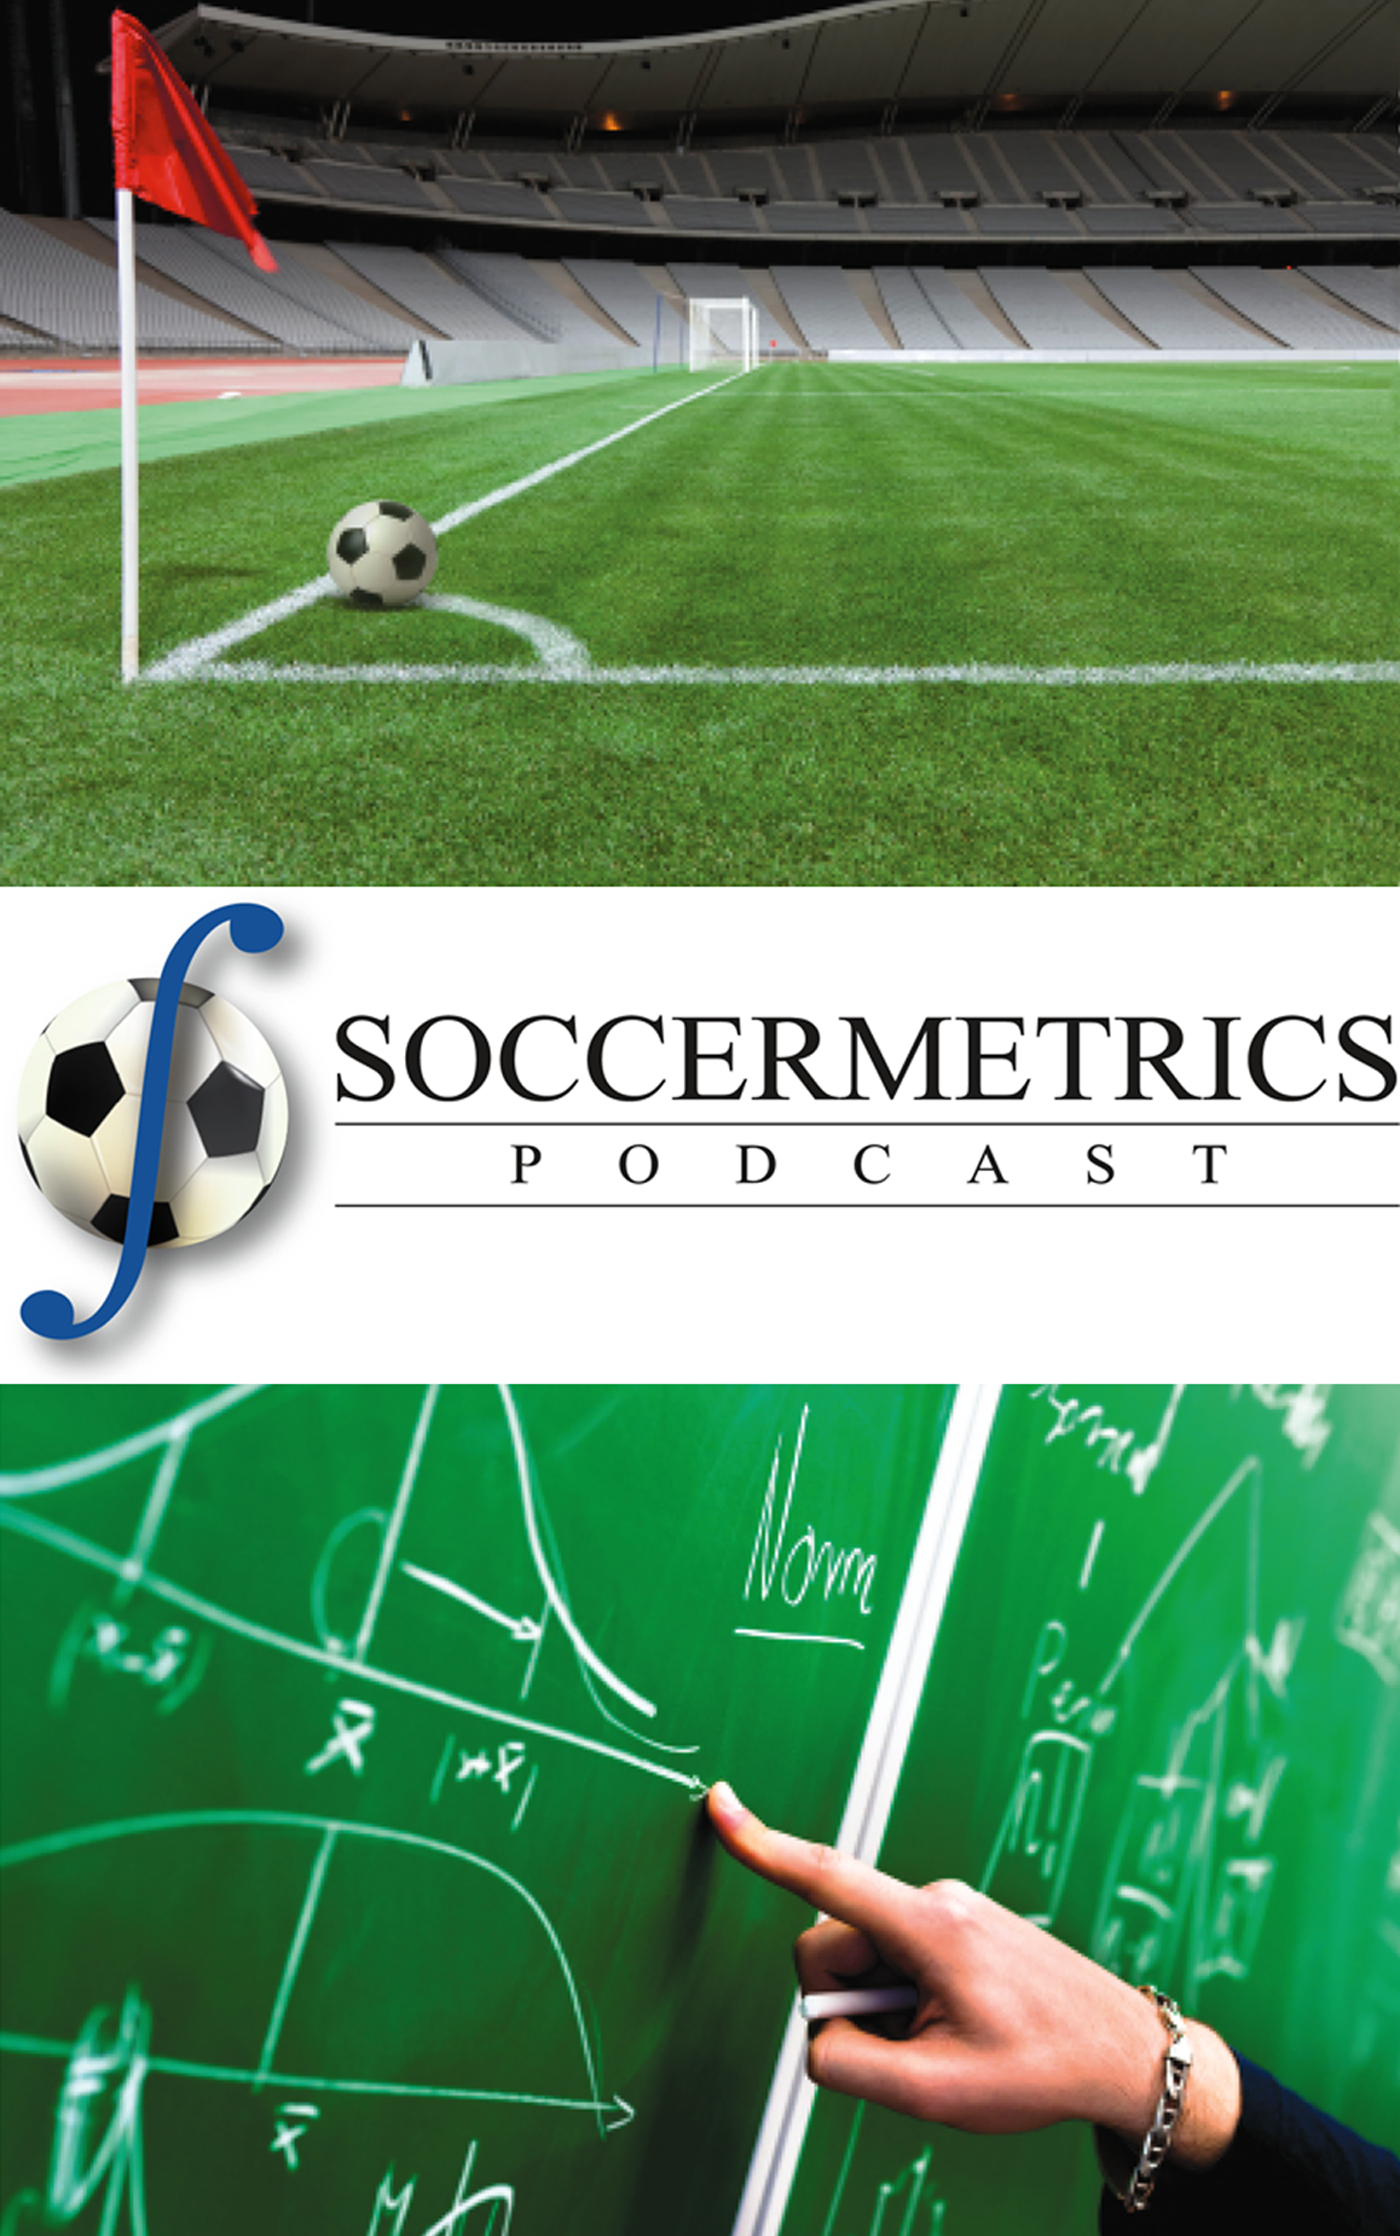 Soccermetrics Podcast